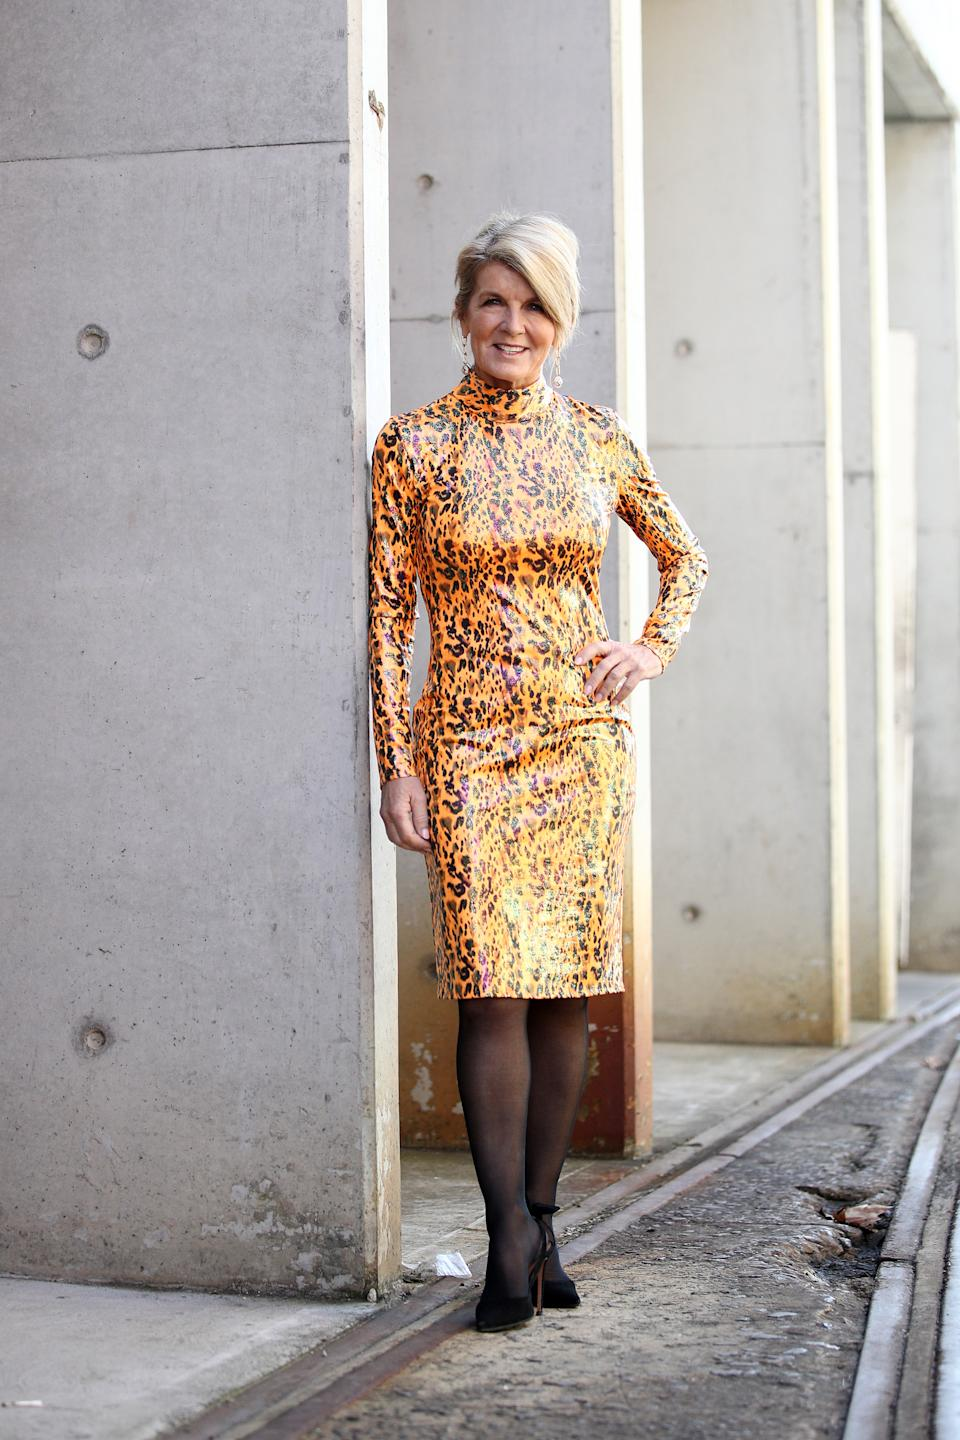 SYDNEY, AUSTRALIA - JUNE 02: Julie Bishop poses during the First Nations Fashion + Design show during Afterpay Australian Fashion Week 2021 Resort '22 Collections at Carriageworks on June 02, 2021 in Sydney, Australia. (Photo by Don Arnold/WireImage)